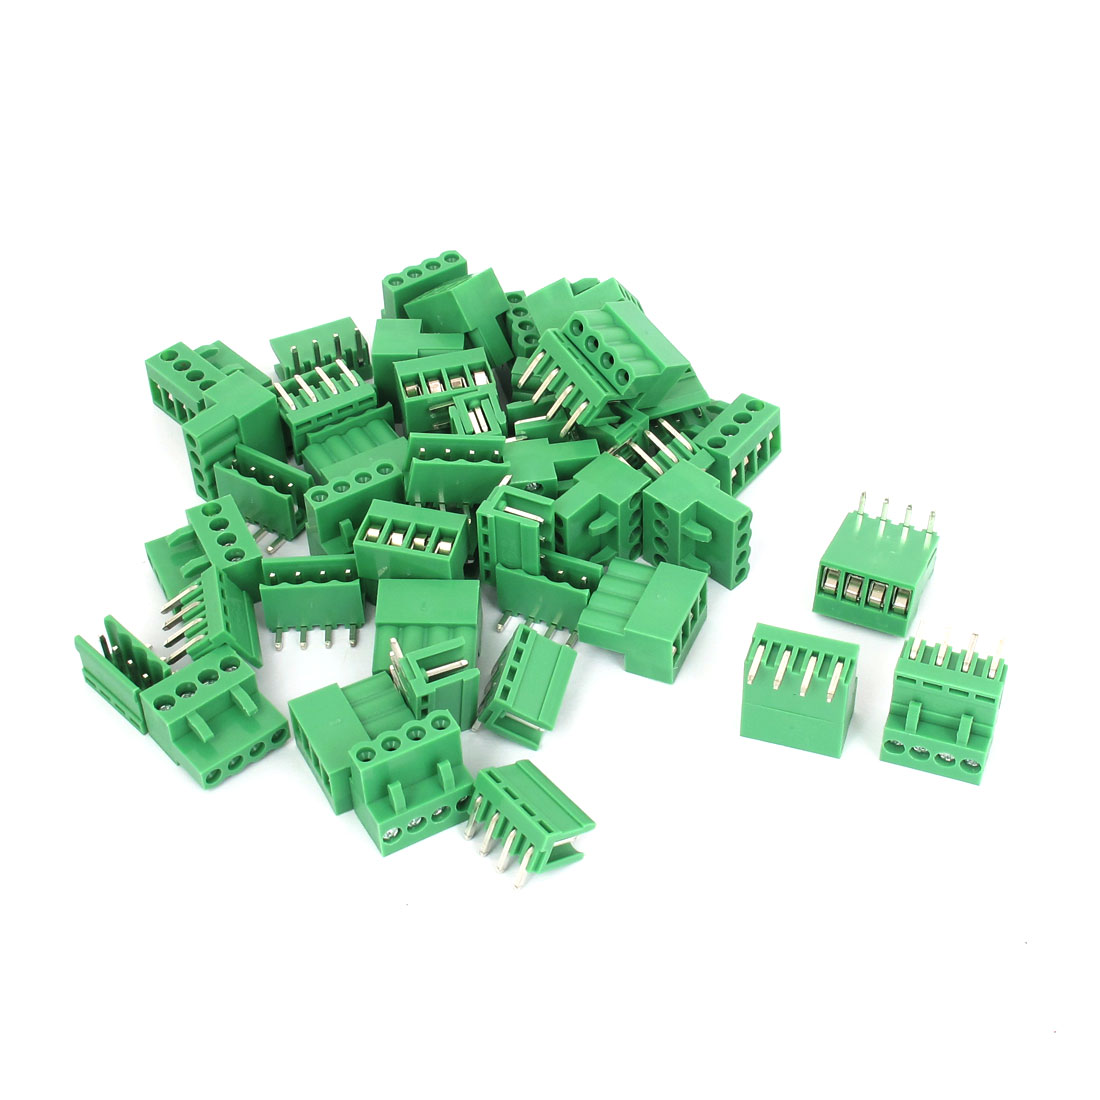 26 Sets 5.08mm Pitch Right Angle 4pin PCB Pluggable Terminal Block Connectors